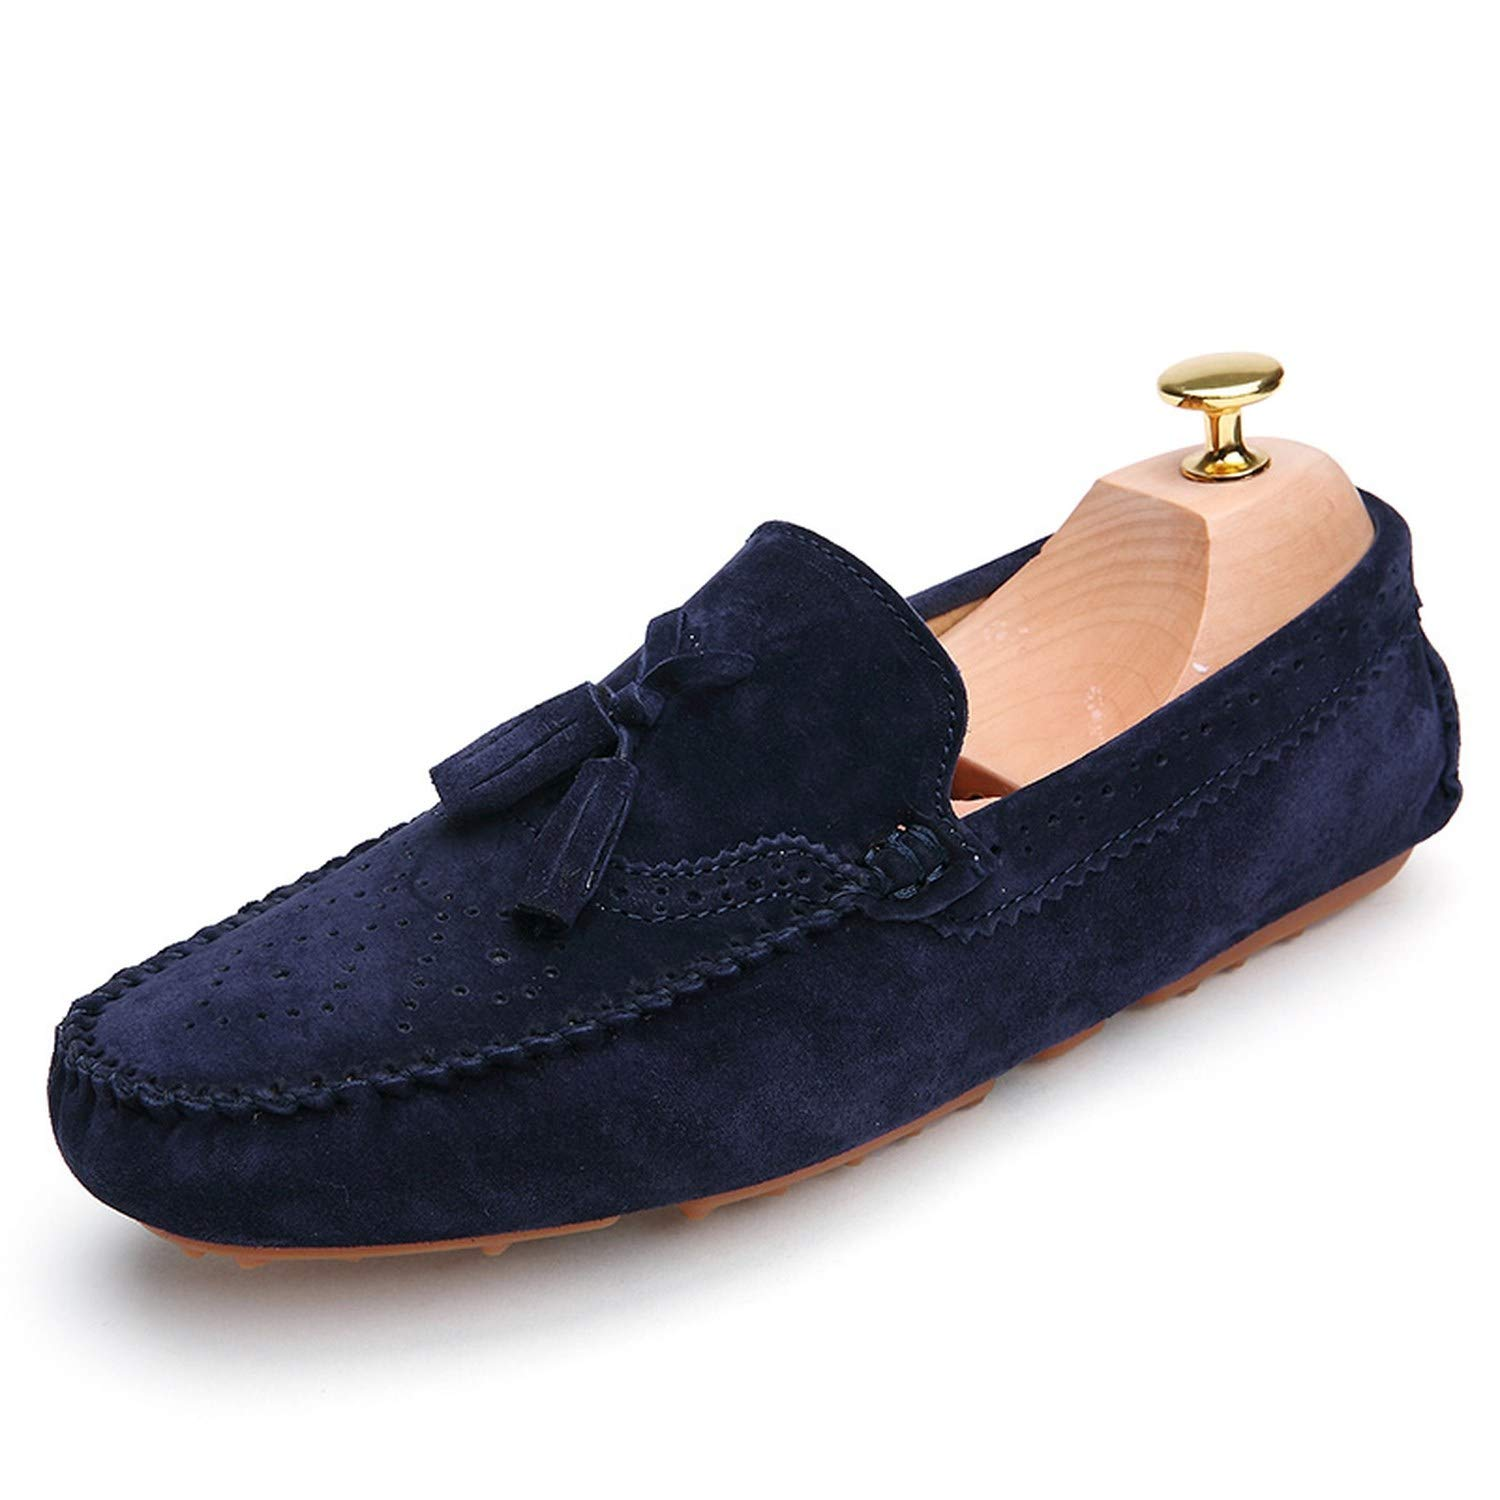 Men Loafers Navy Blue Genuine Leather Moccasins Slip On Tassel Casual Shoes Flats Moccasin Driving Shoes,Navy Blue,6.5